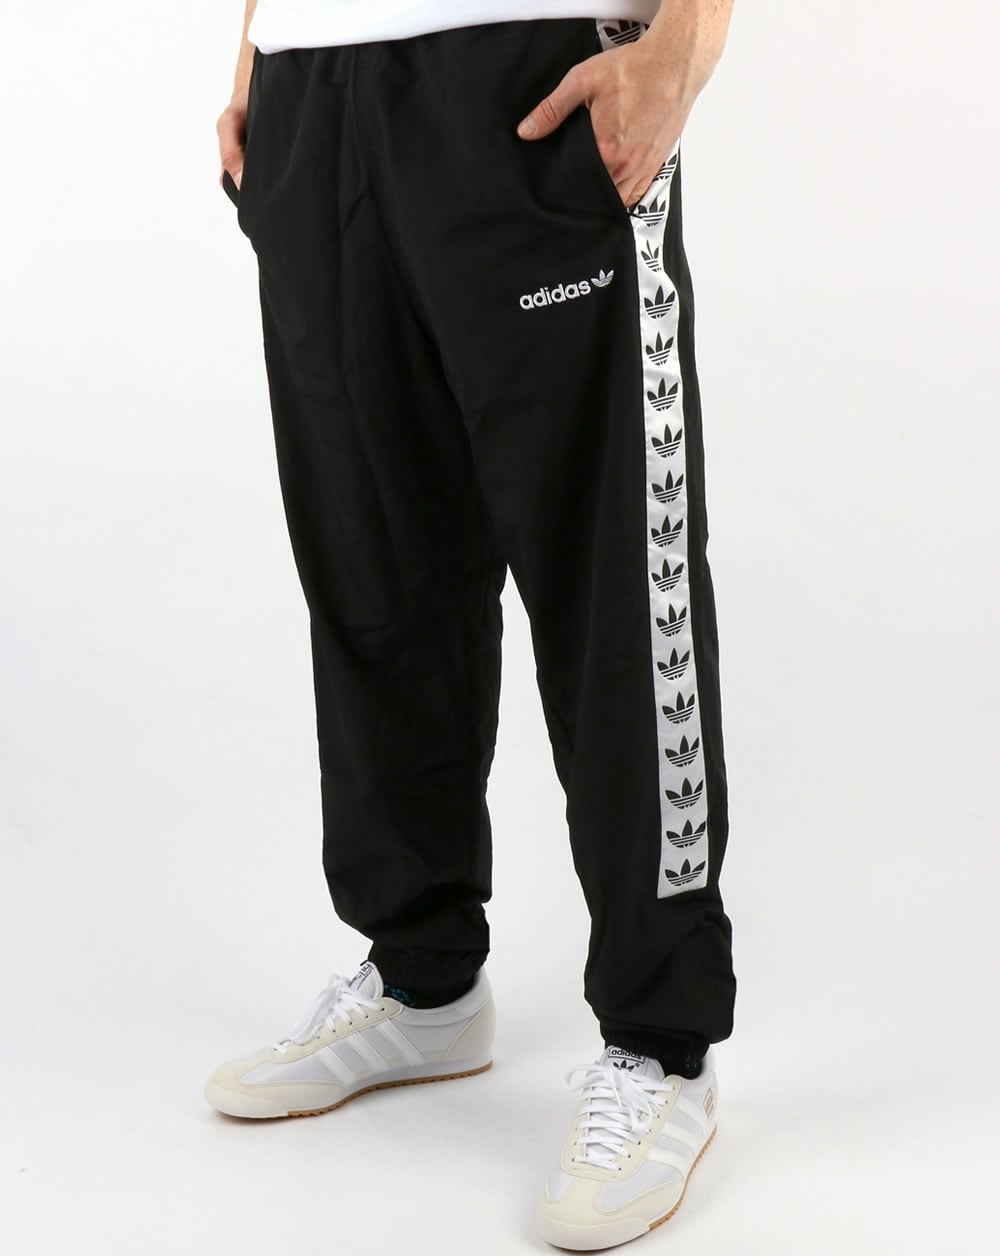 Adidas Originals Tnt Tape Wind Pants Black White Track